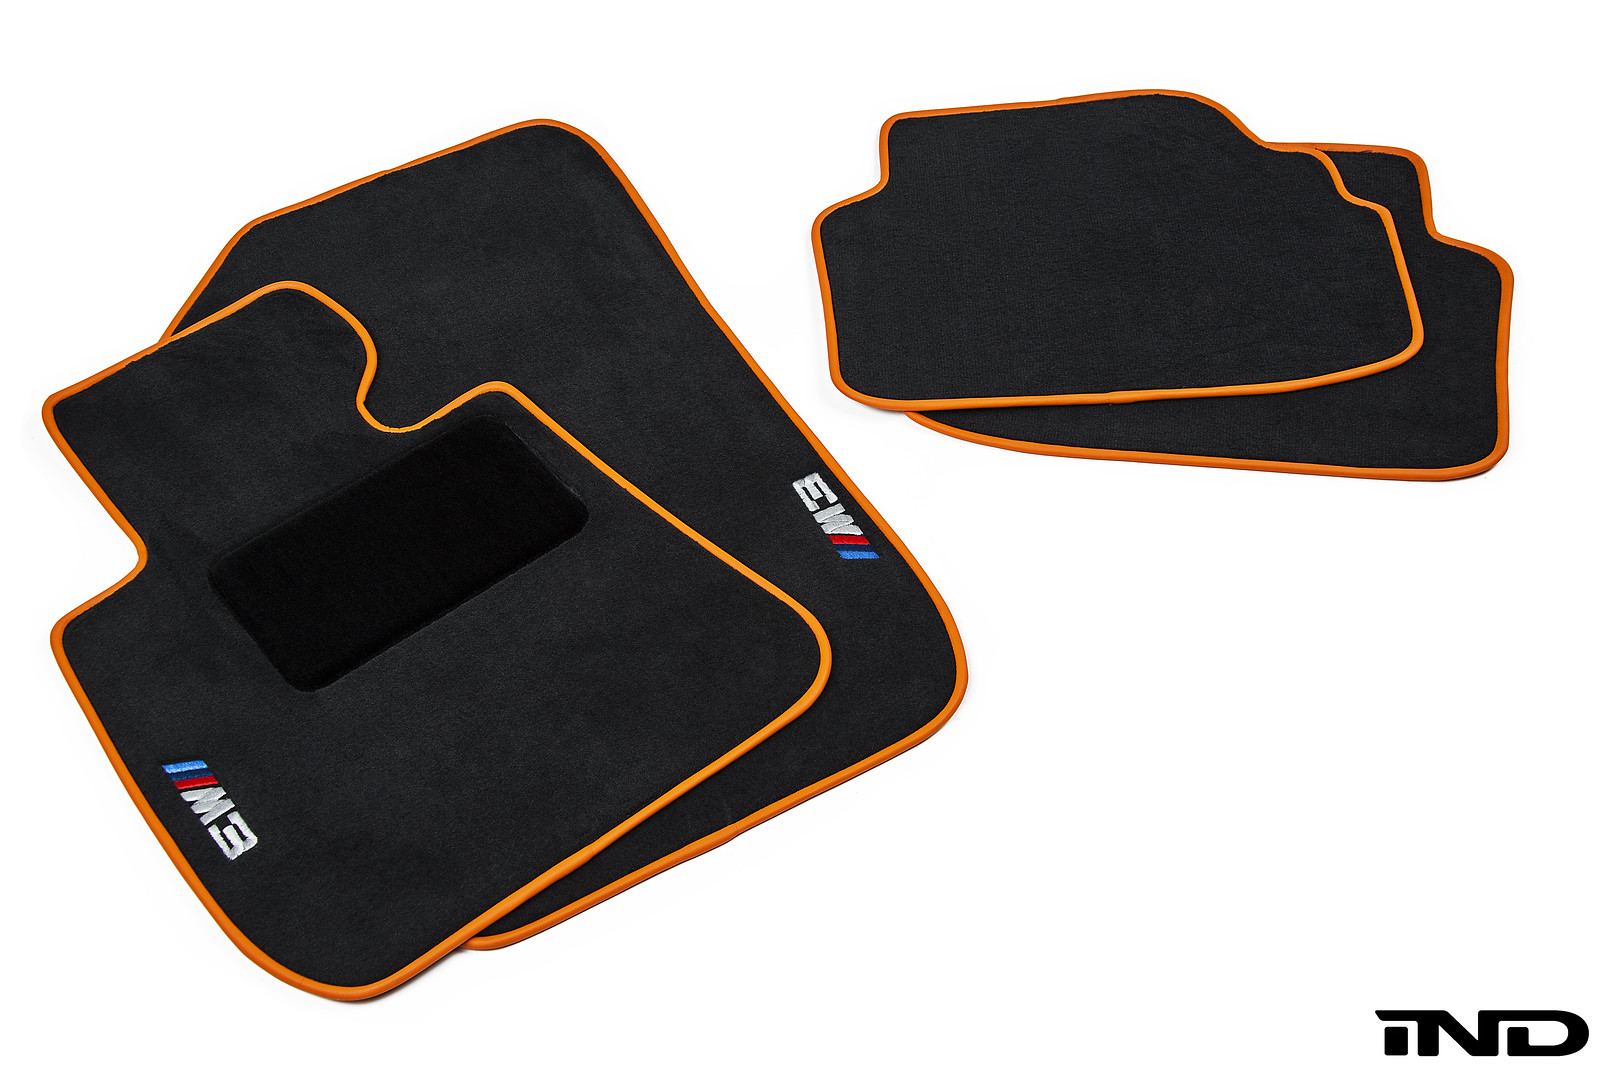 Bmw rubber floor mats e90 - Ind Starts With An Original Bmw Floor Mat And Modifies The Piping Surrounding Edges Of One